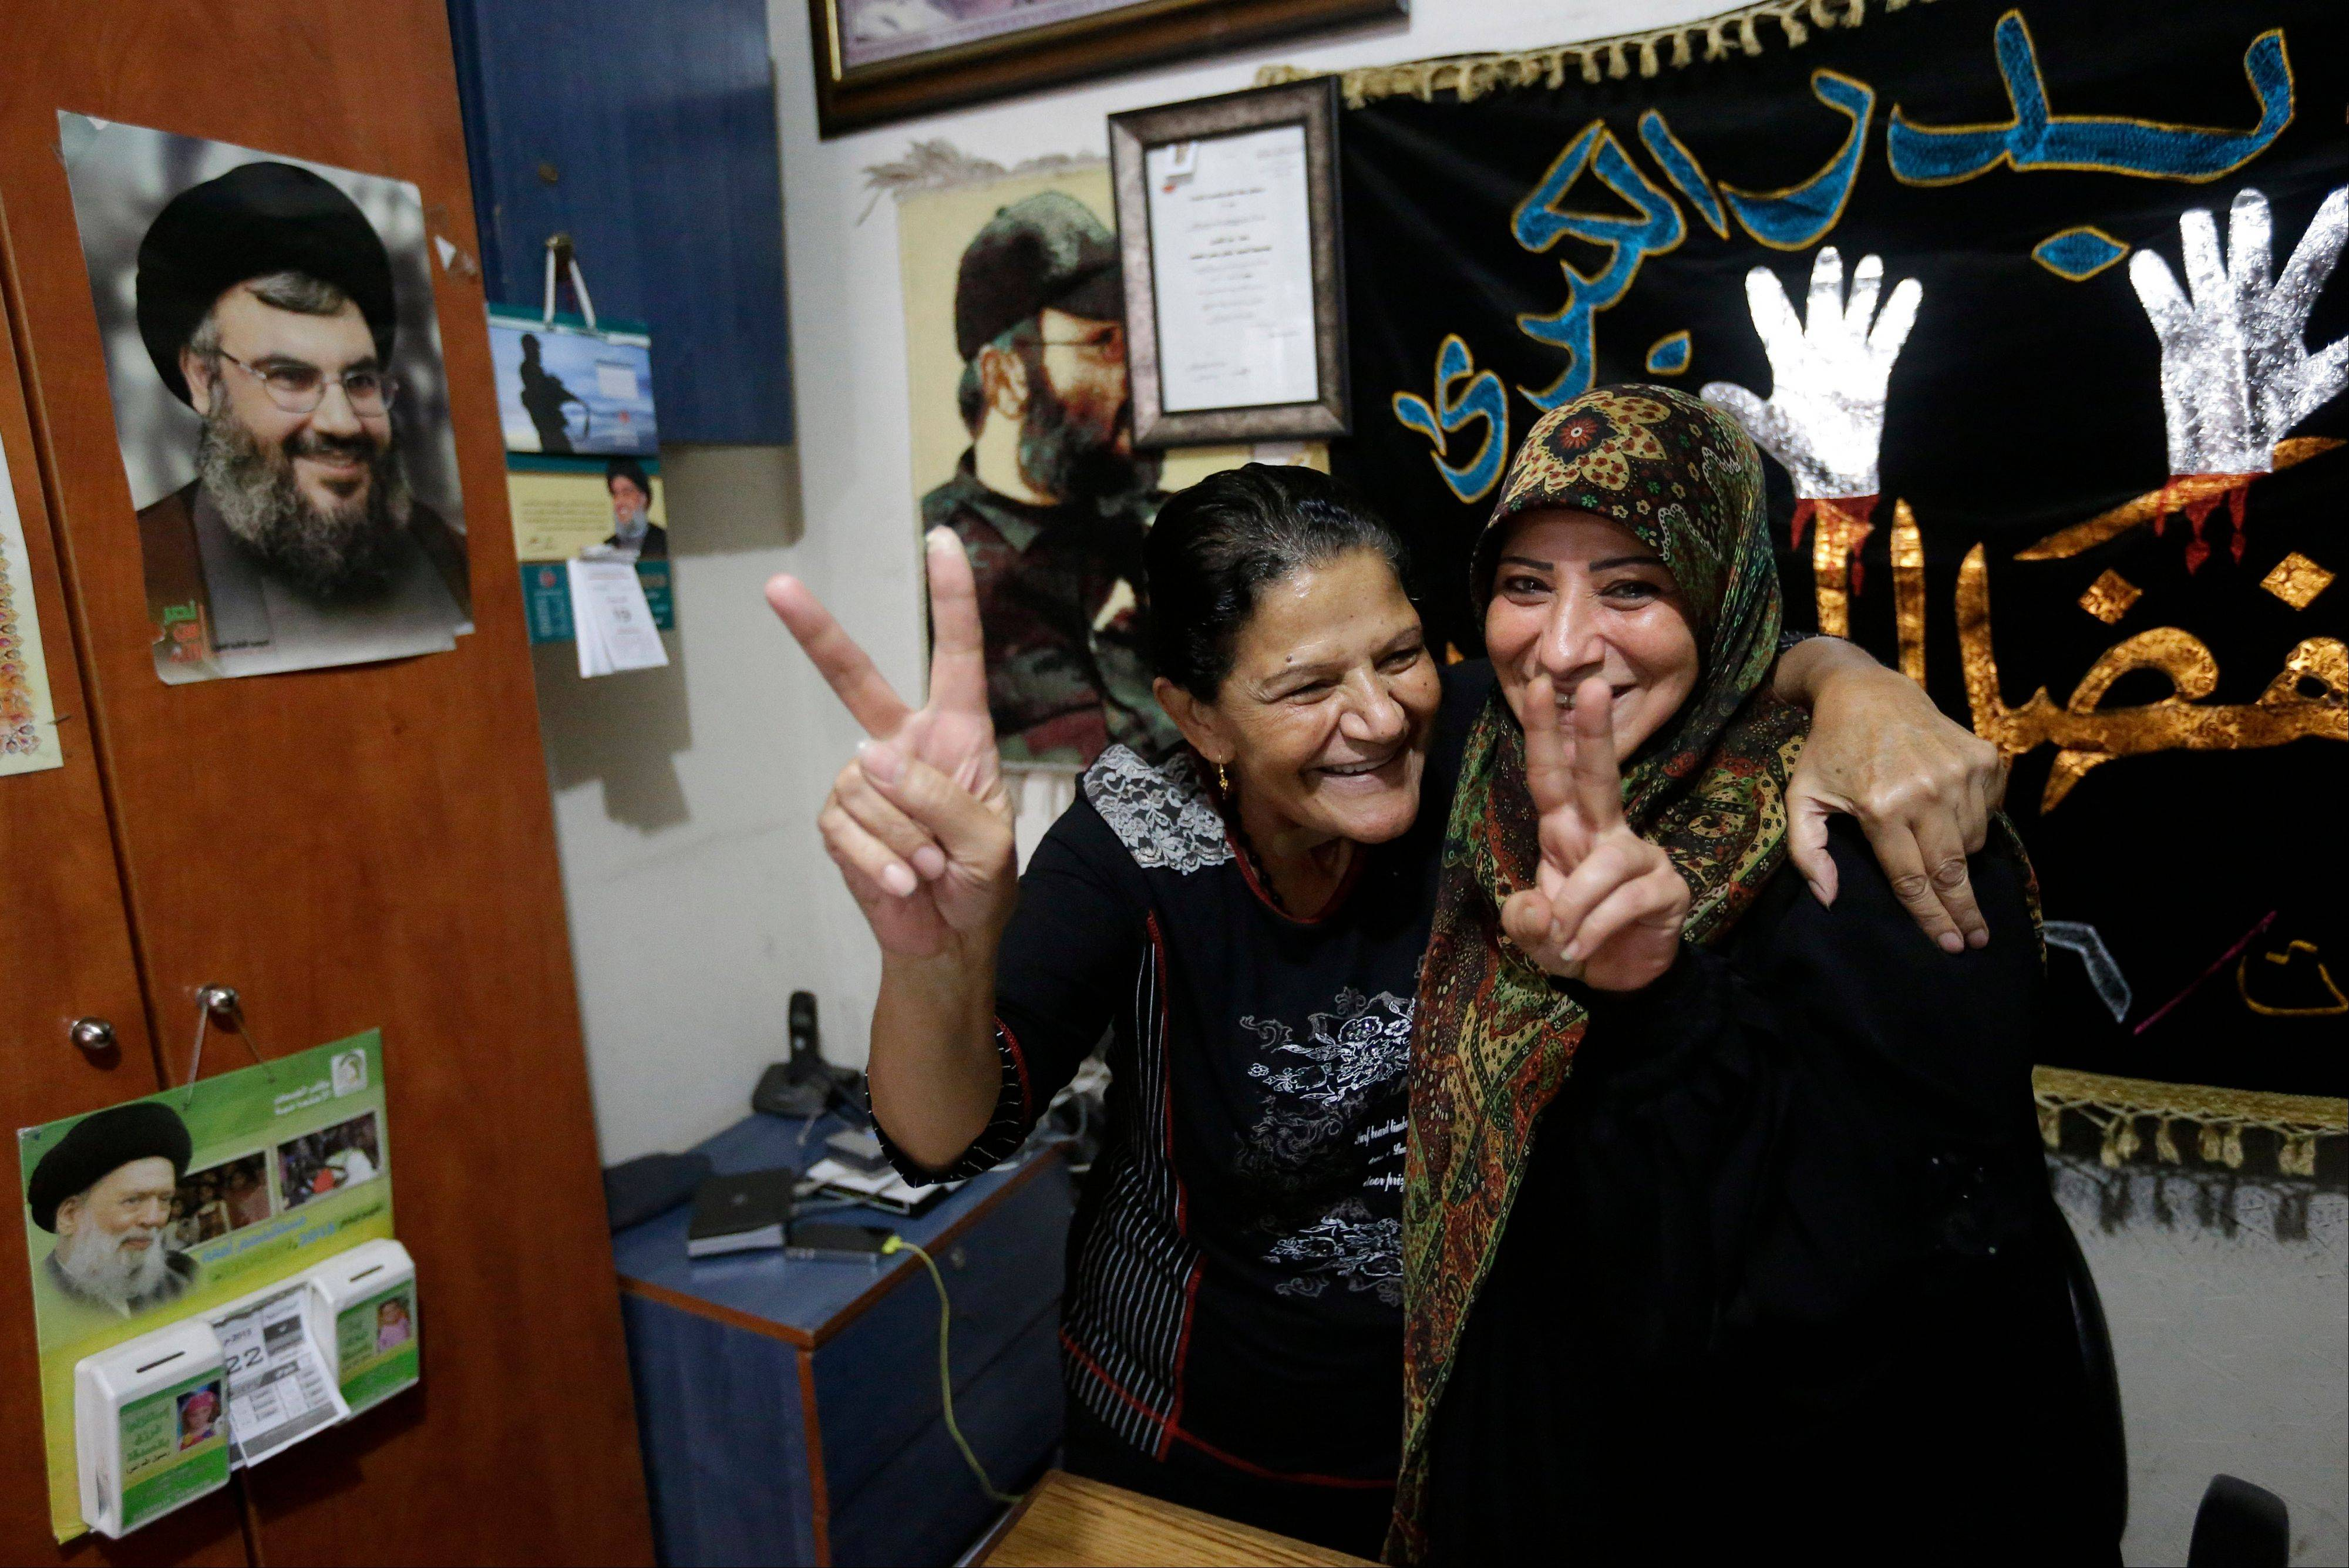 Relatives of nine Lebanese Shiite pilgrims who were kidnapped by a rebel faction in northern Syria in May 2012, flash victory signs Saturday as they celebrate news of their relatives release, in a suburb of Beirut, Lebanon.